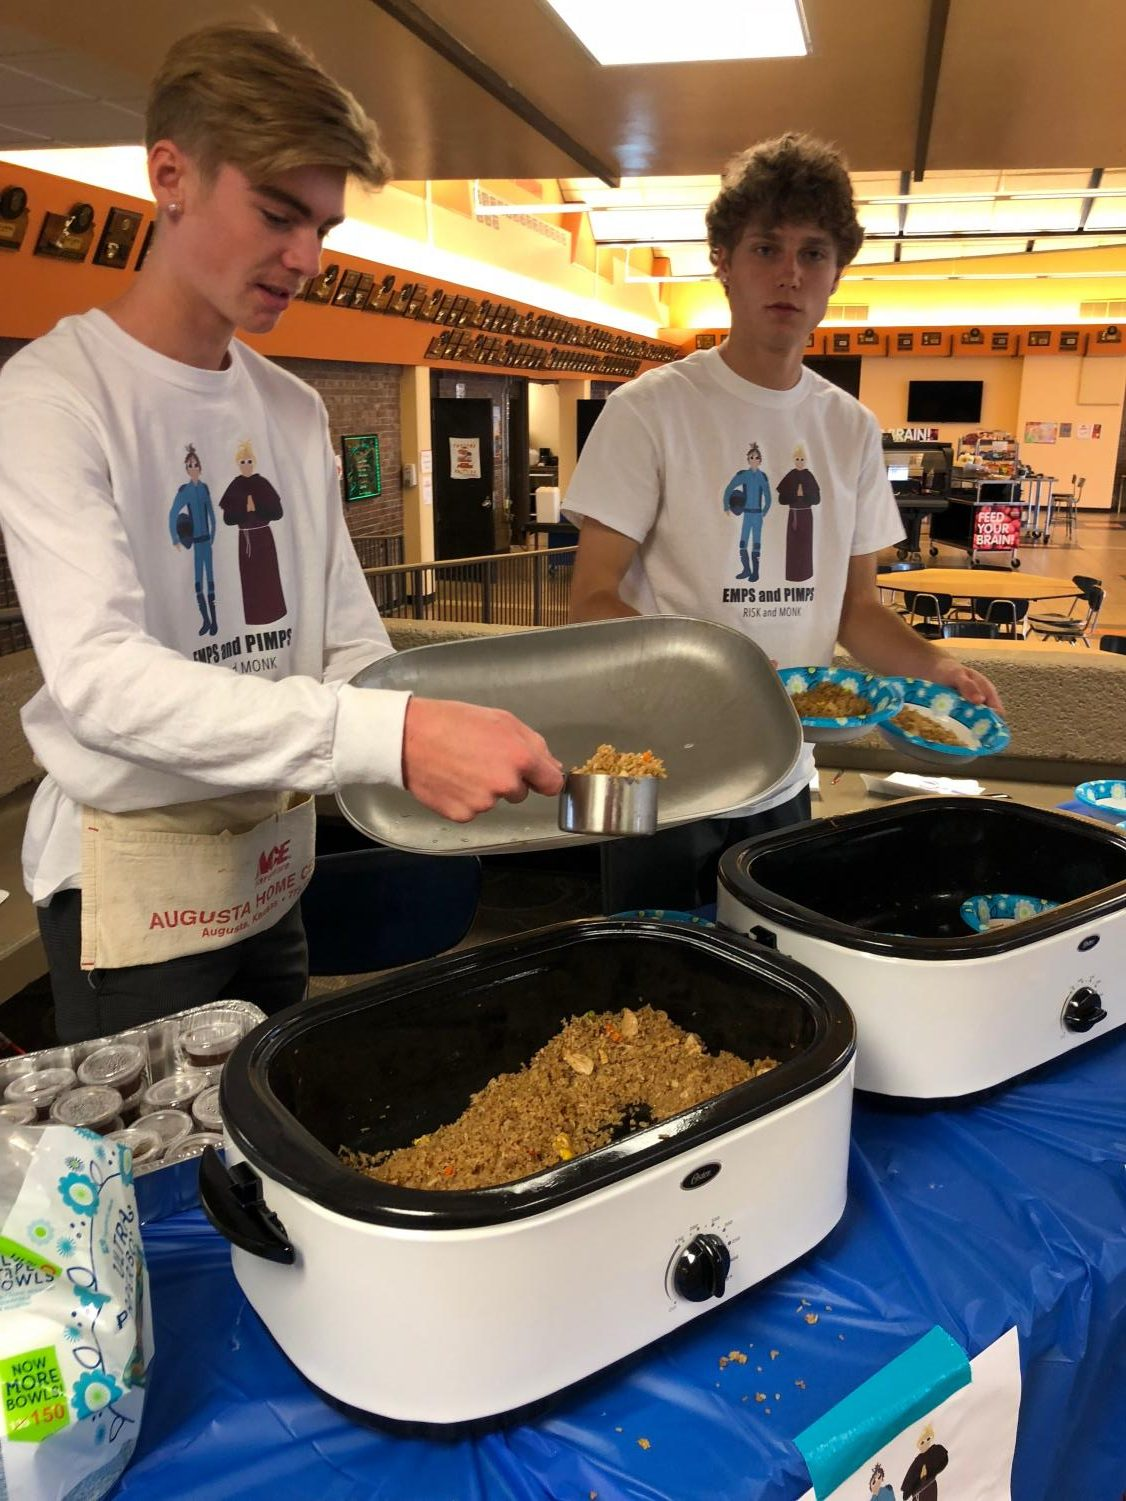 Jake Tucker (12) and Cade Zerr (12) served Fried rice on Market Day. Their booth was called Emps & Pimps.